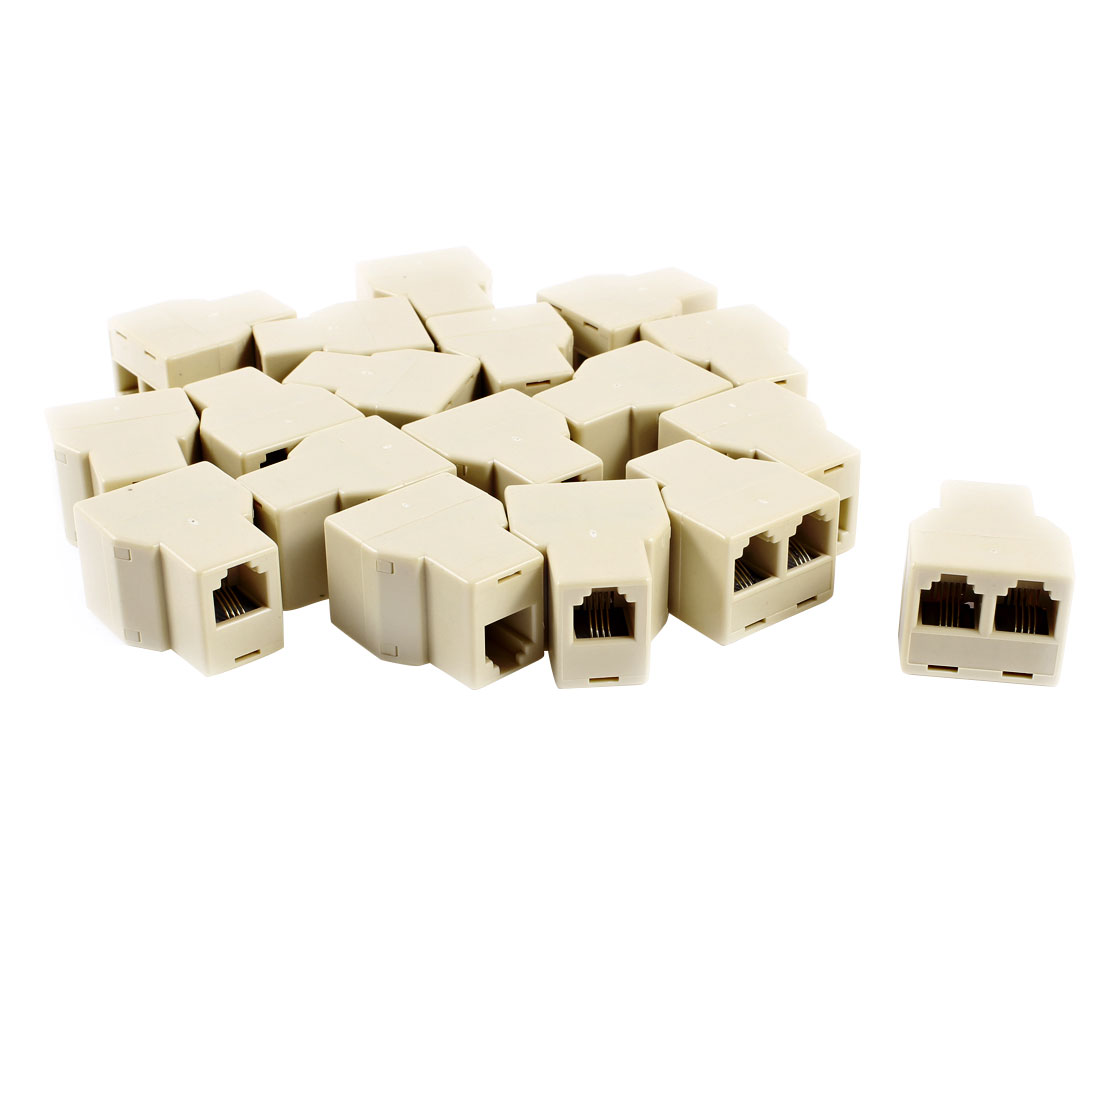 20 Pcs RJ11 F-2F F/2F Plug Telephone Modular Splitter Joiner Connectors Beige